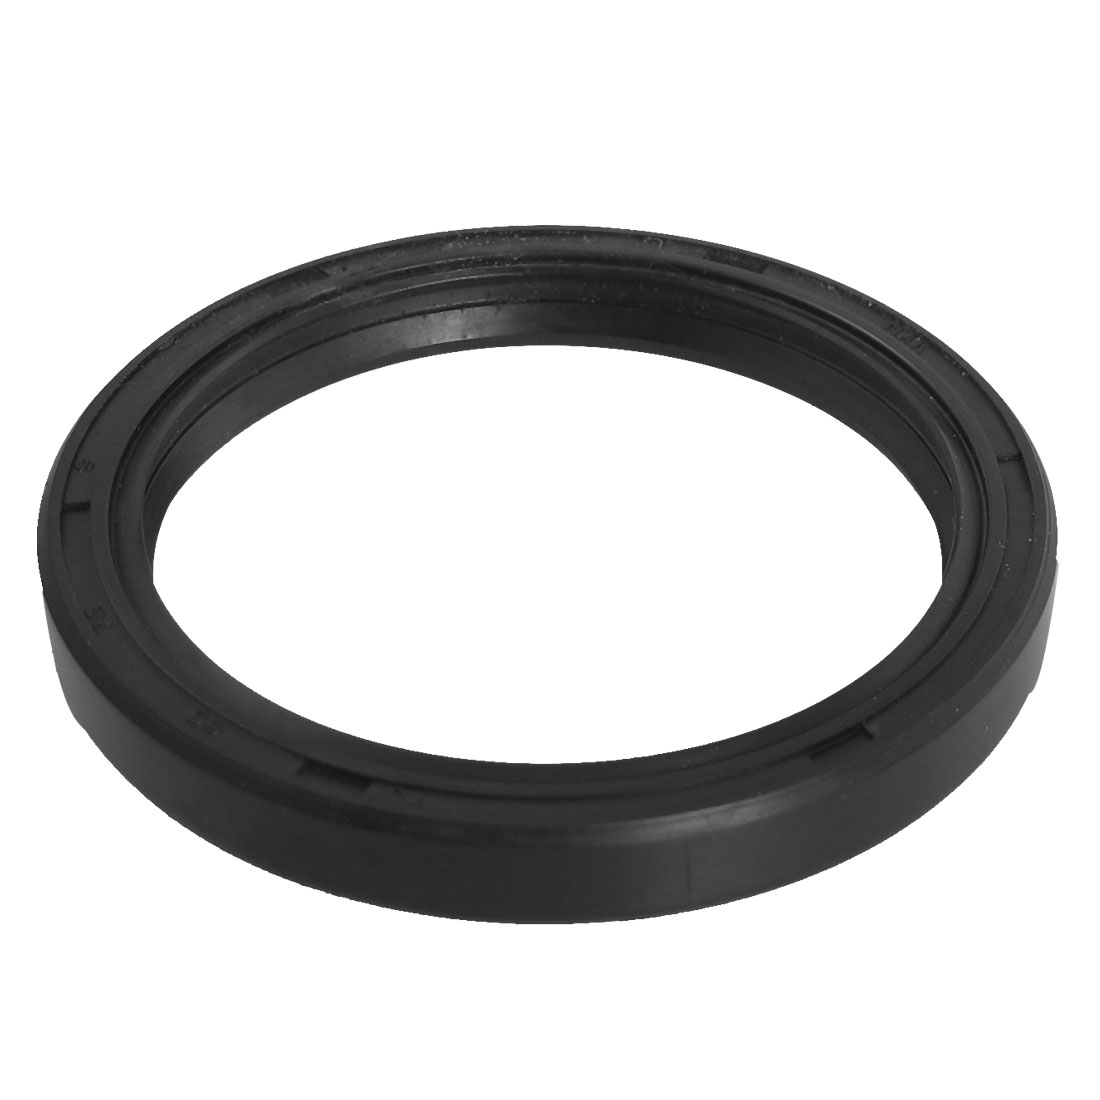 Black Nitrile Rubber Dual Lips Oil Shaft Seal TC 60mm x 75mm x 9mm